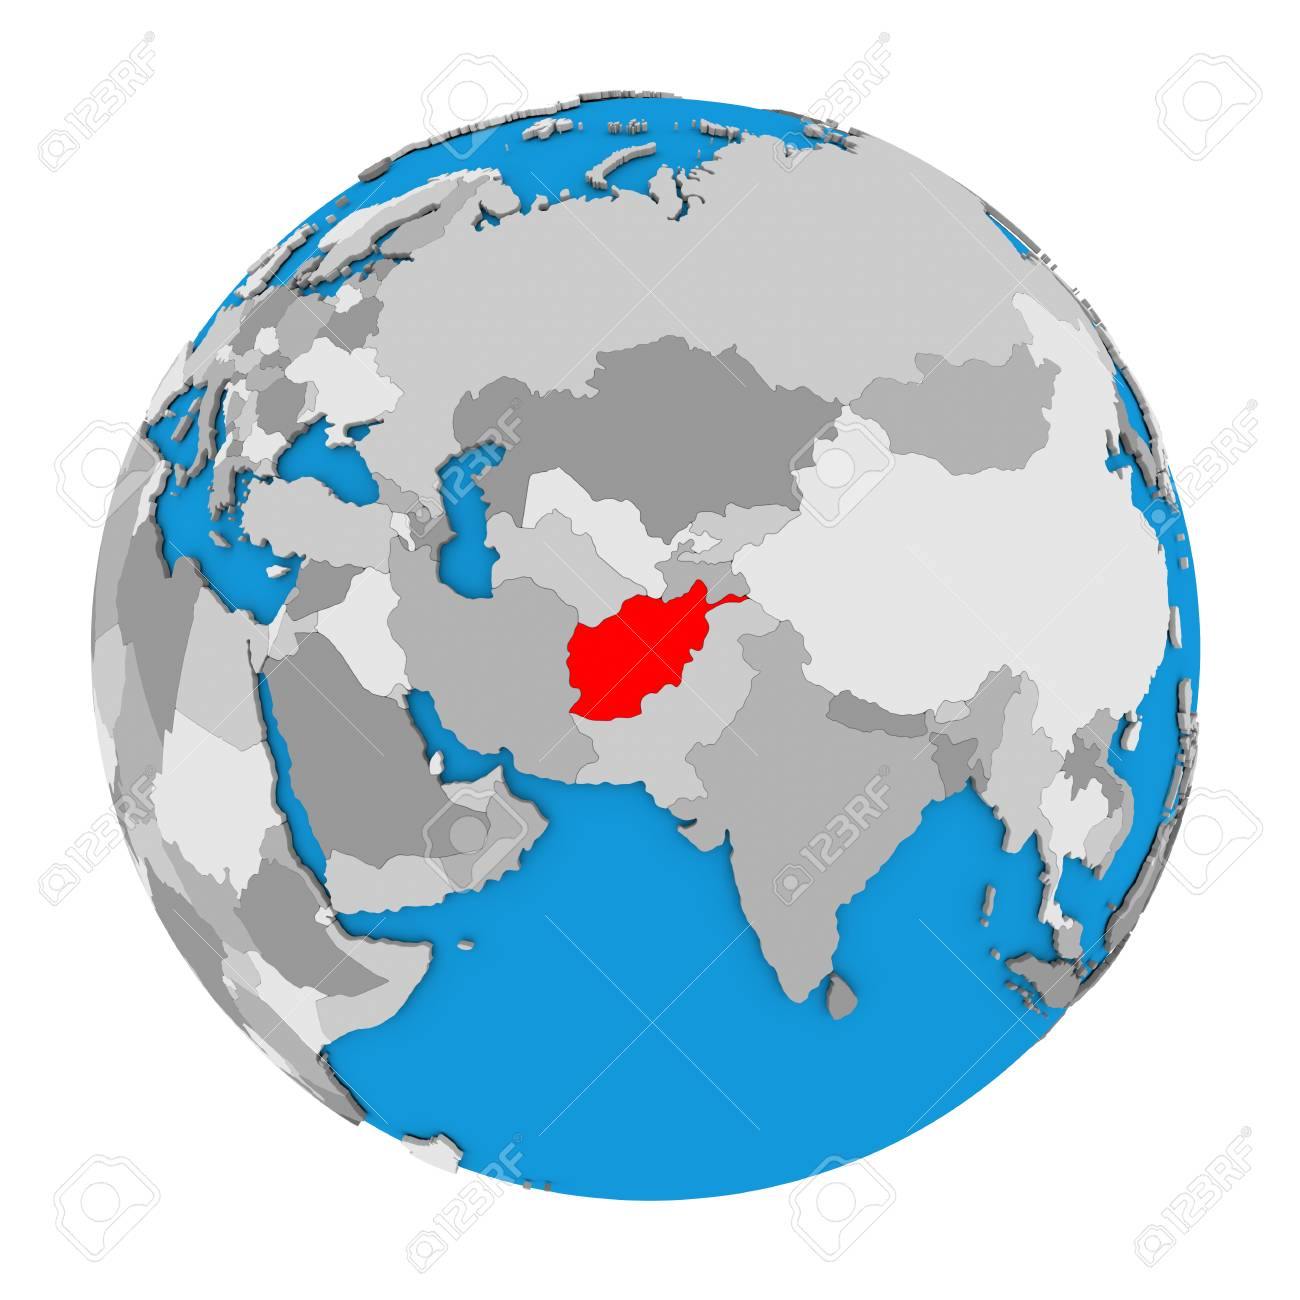 Map of afghanistan highlighted in red on globe 3d illustration illustration map of afghanistan highlighted in red on globe 3d illustration isolated on white background gumiabroncs Gallery